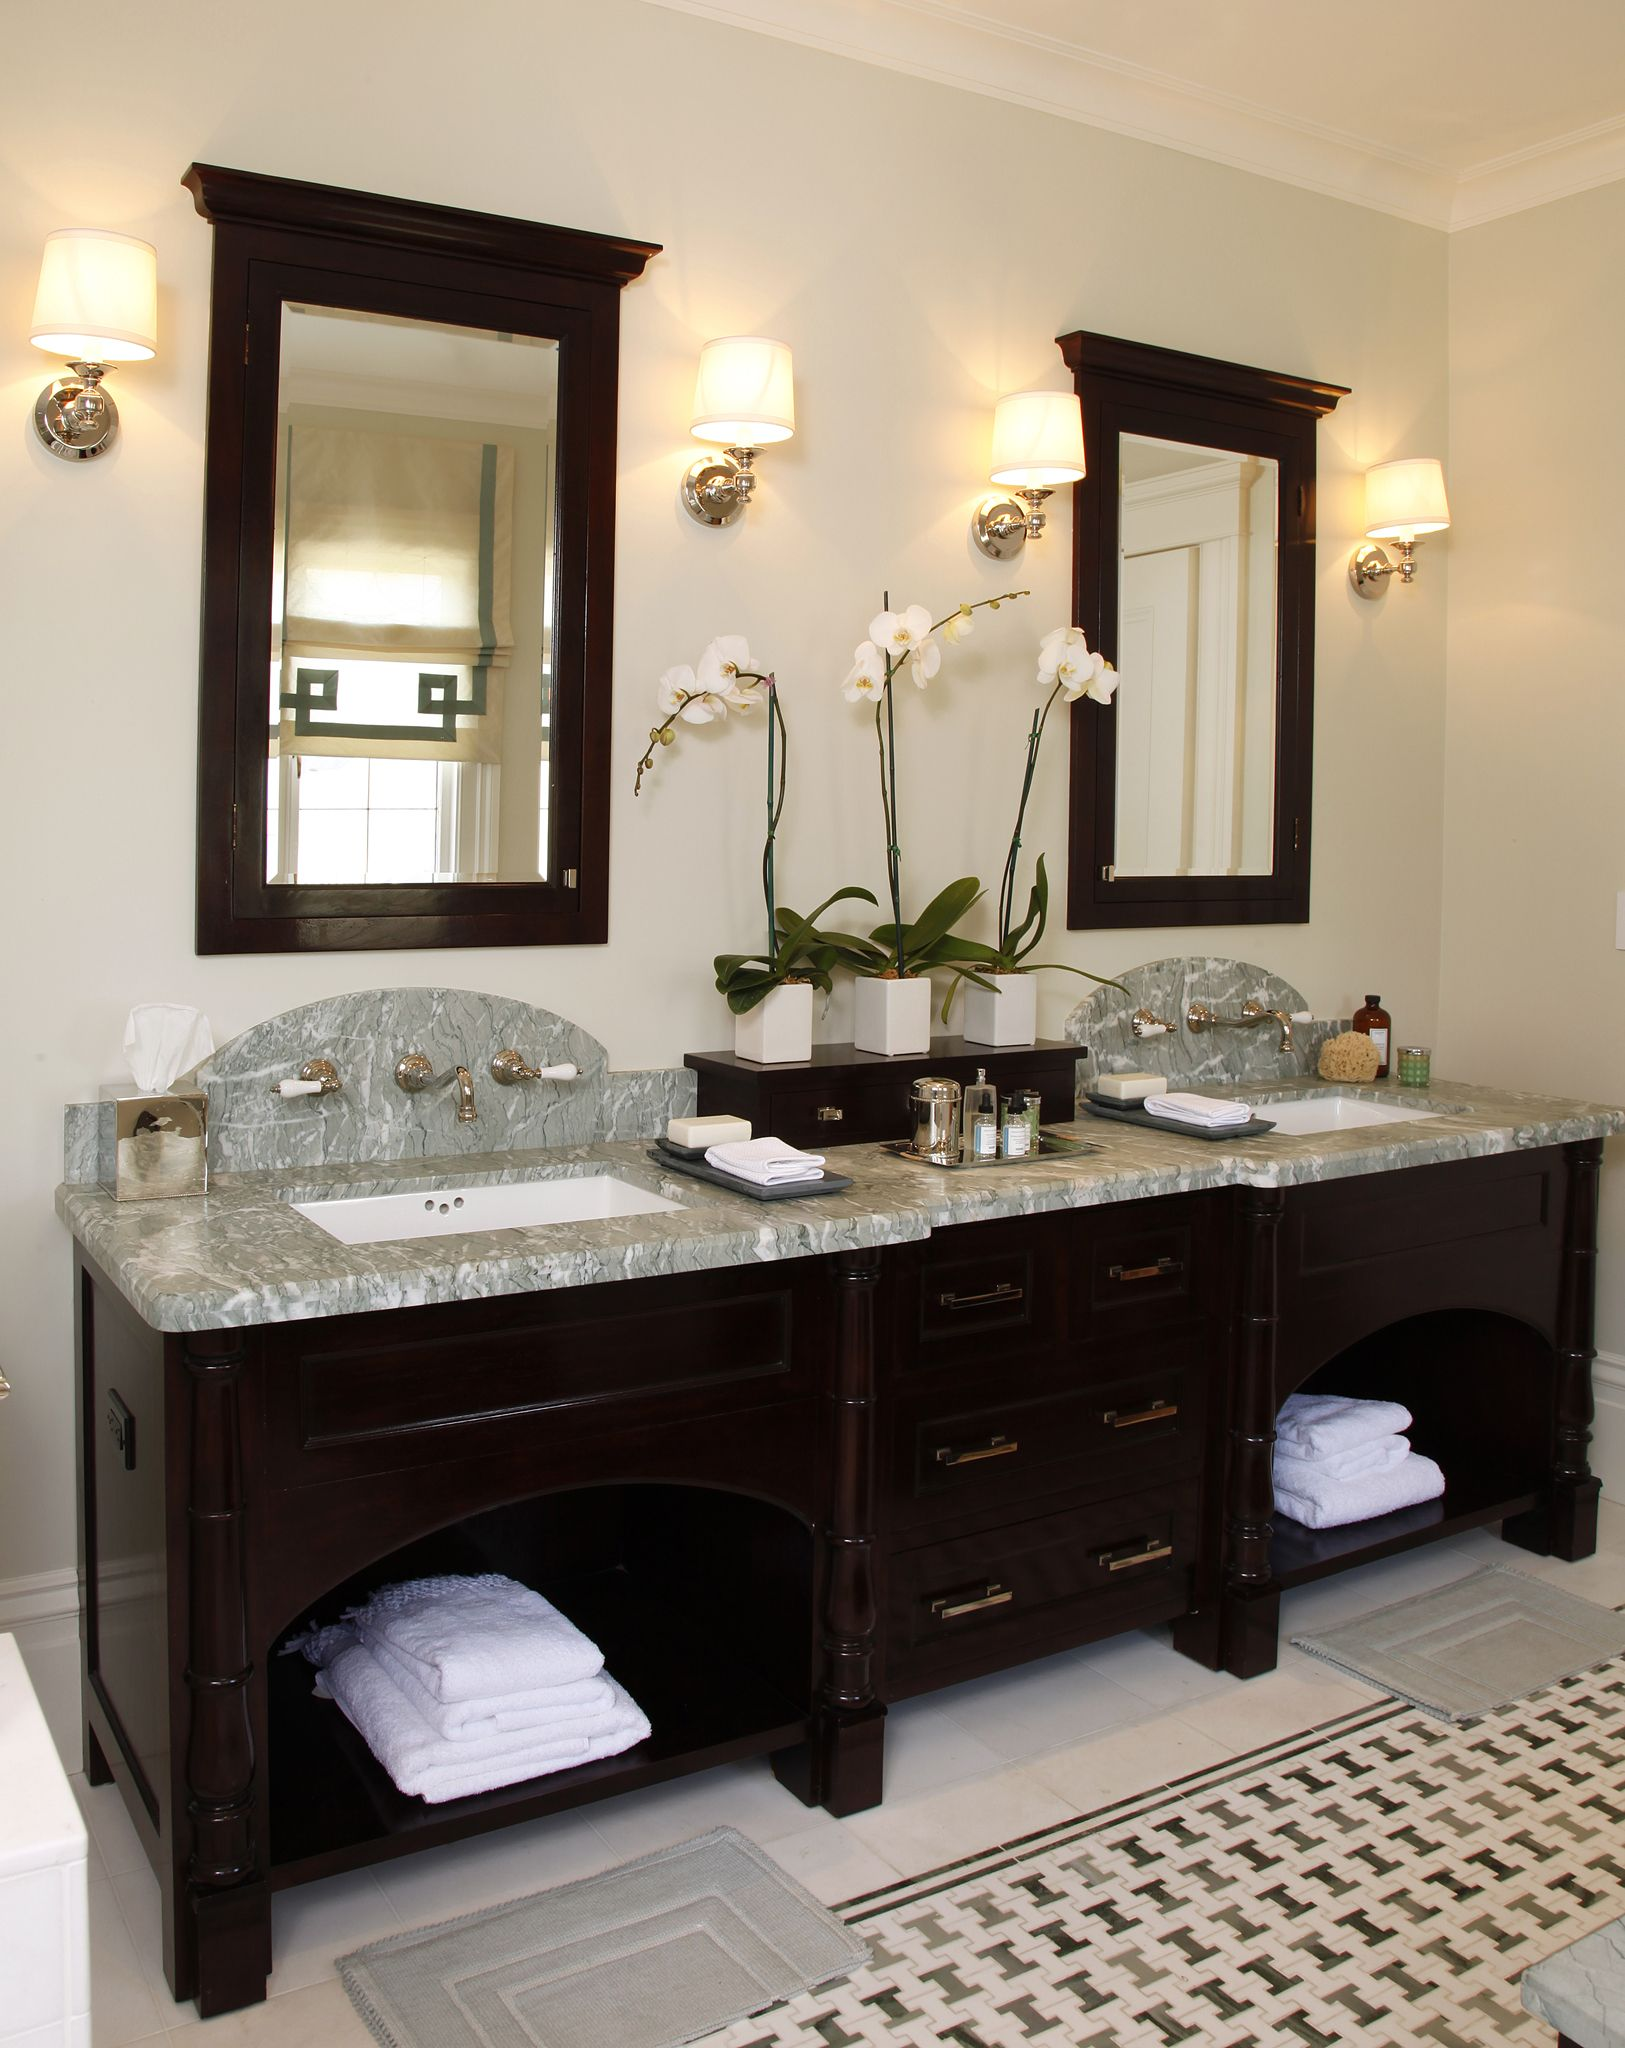 Master bedroom and bathroom  Master Bathroom  Design by Anne Fifer Interiors  Remodel ideas